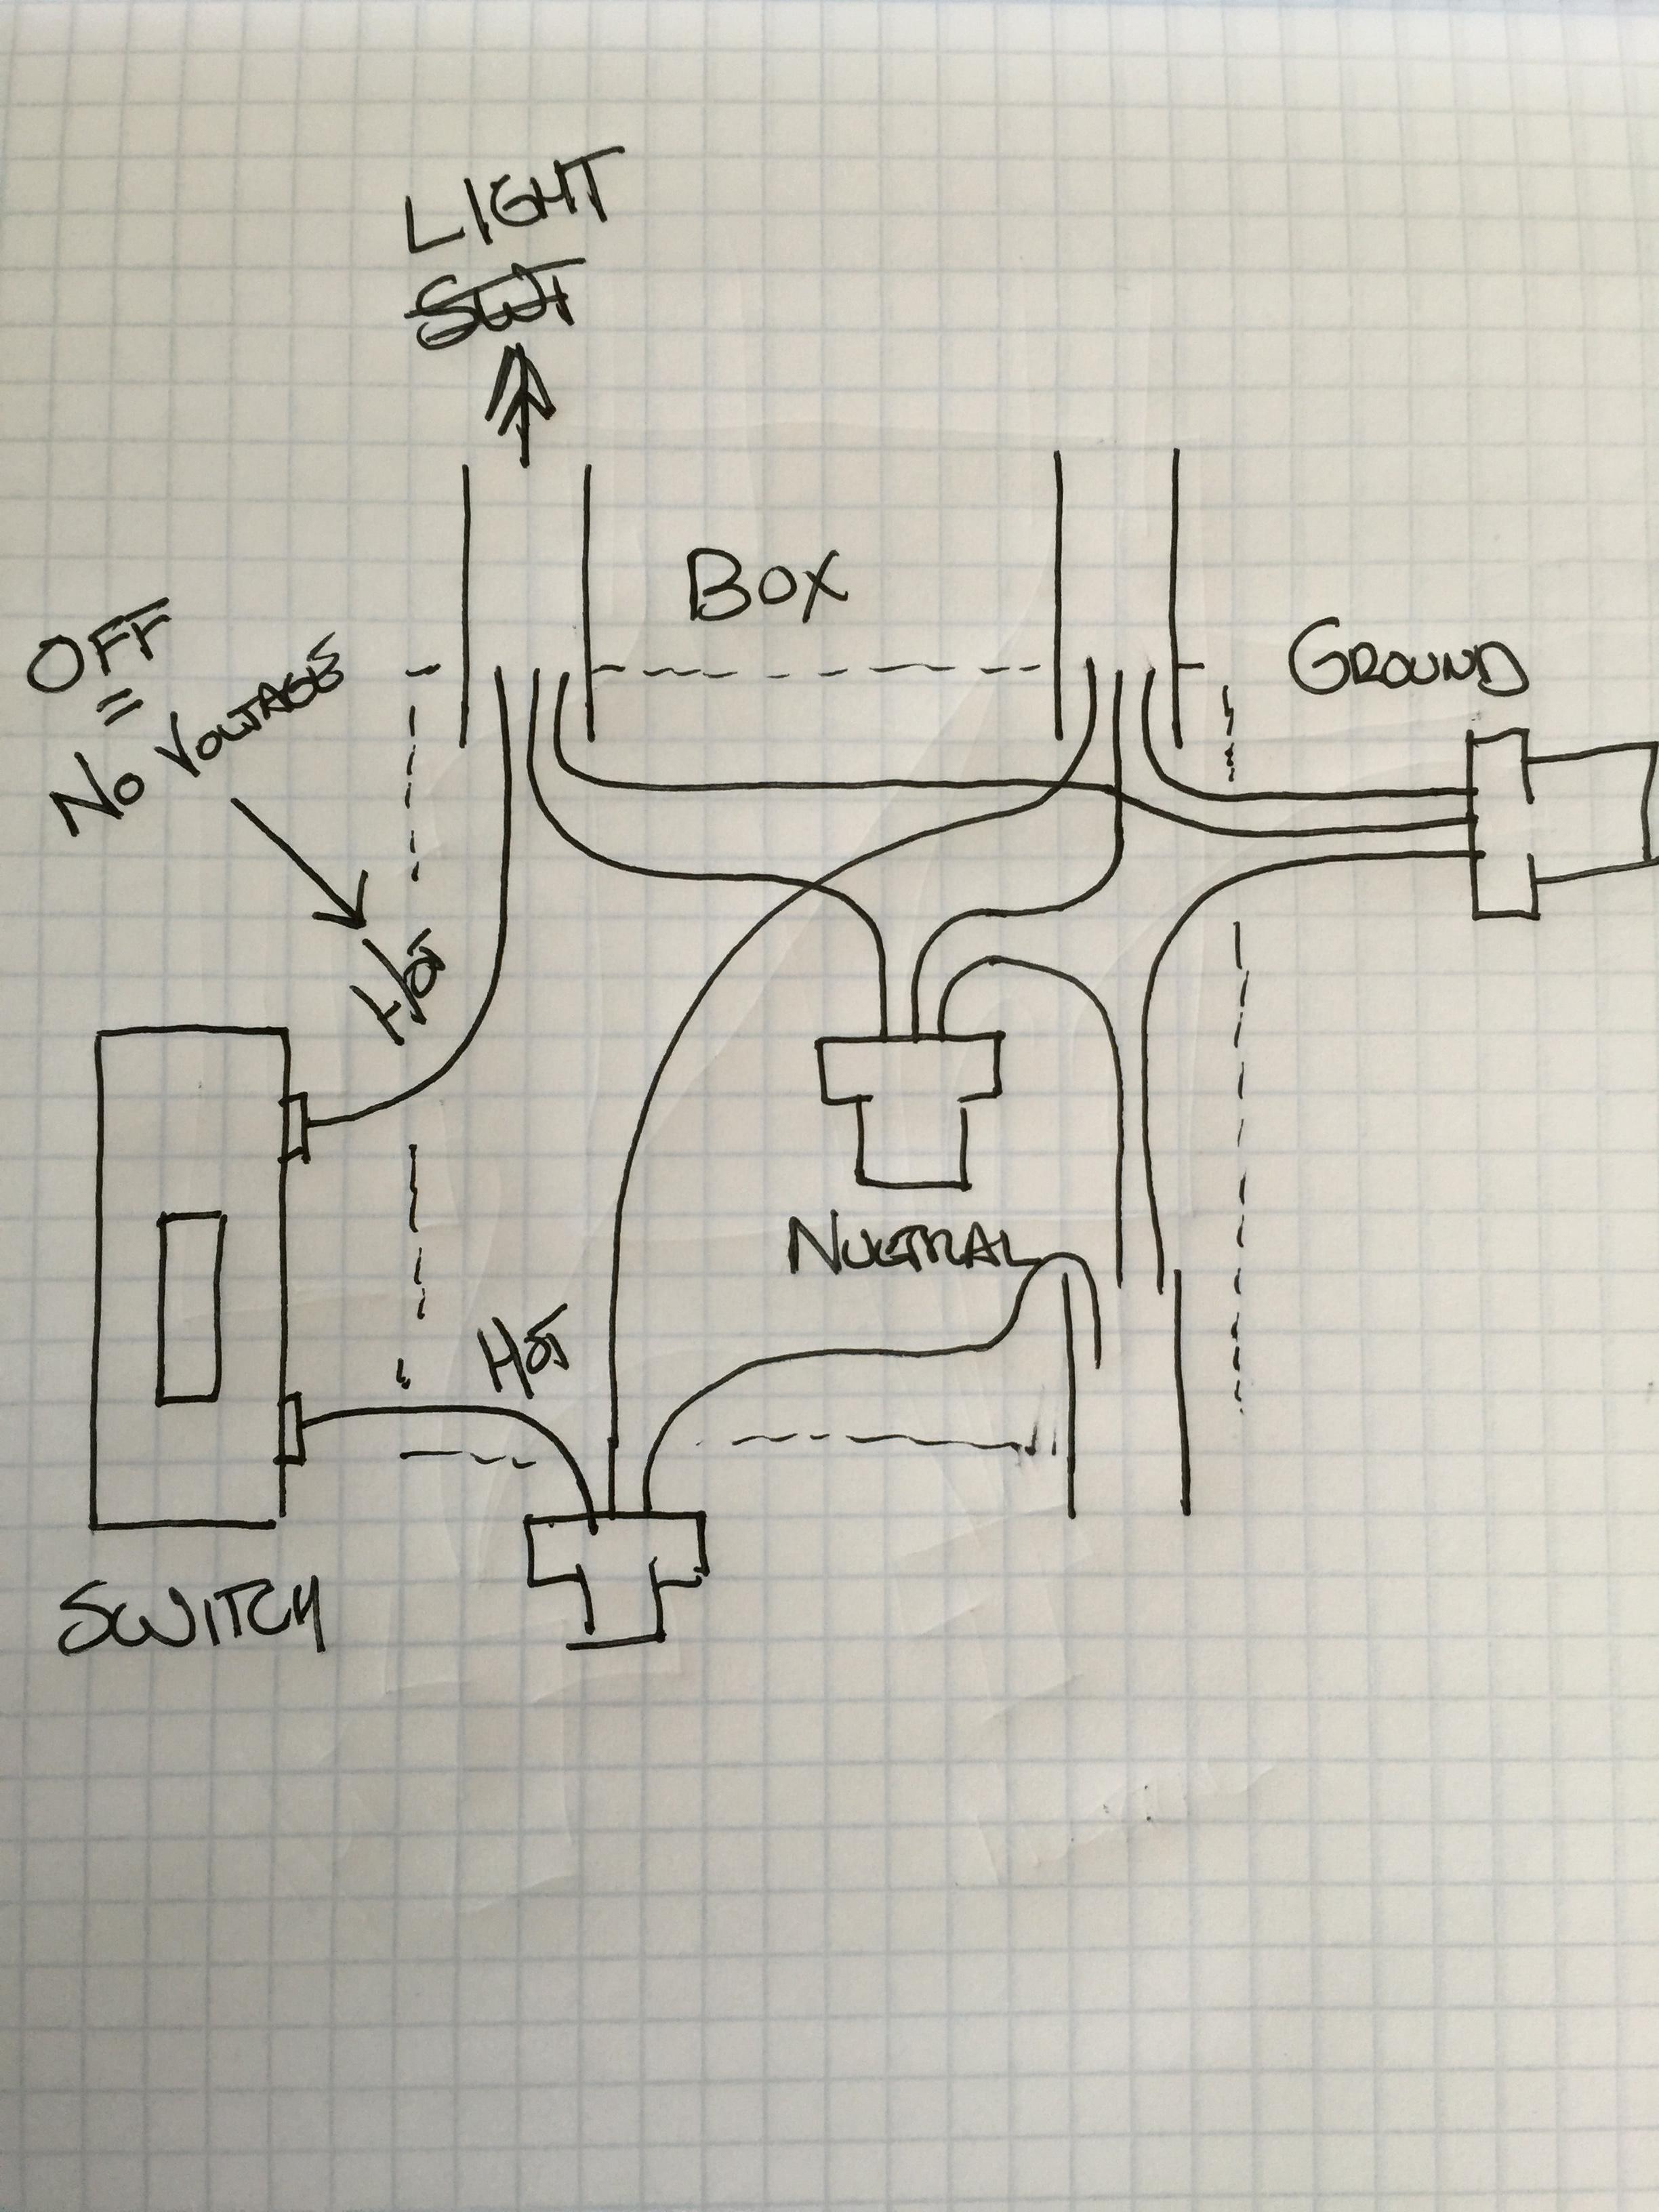 Dimming 2x4 Led Fixture Wiring Diagram